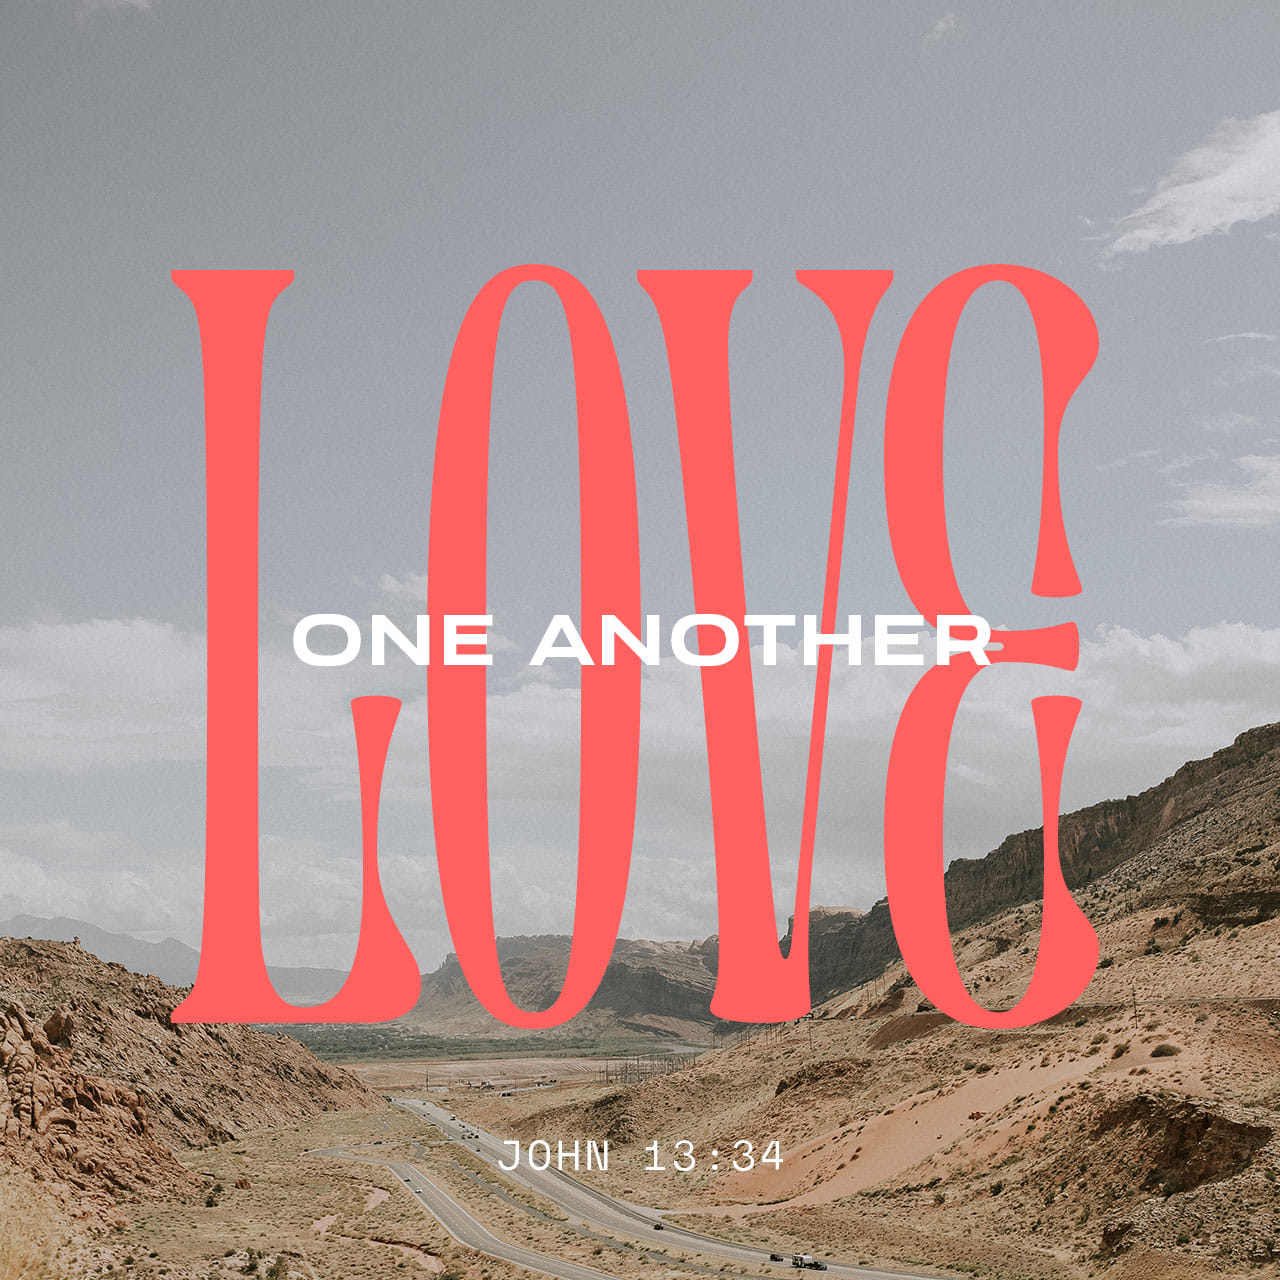 Love one another - John 13:34 - Verse Image